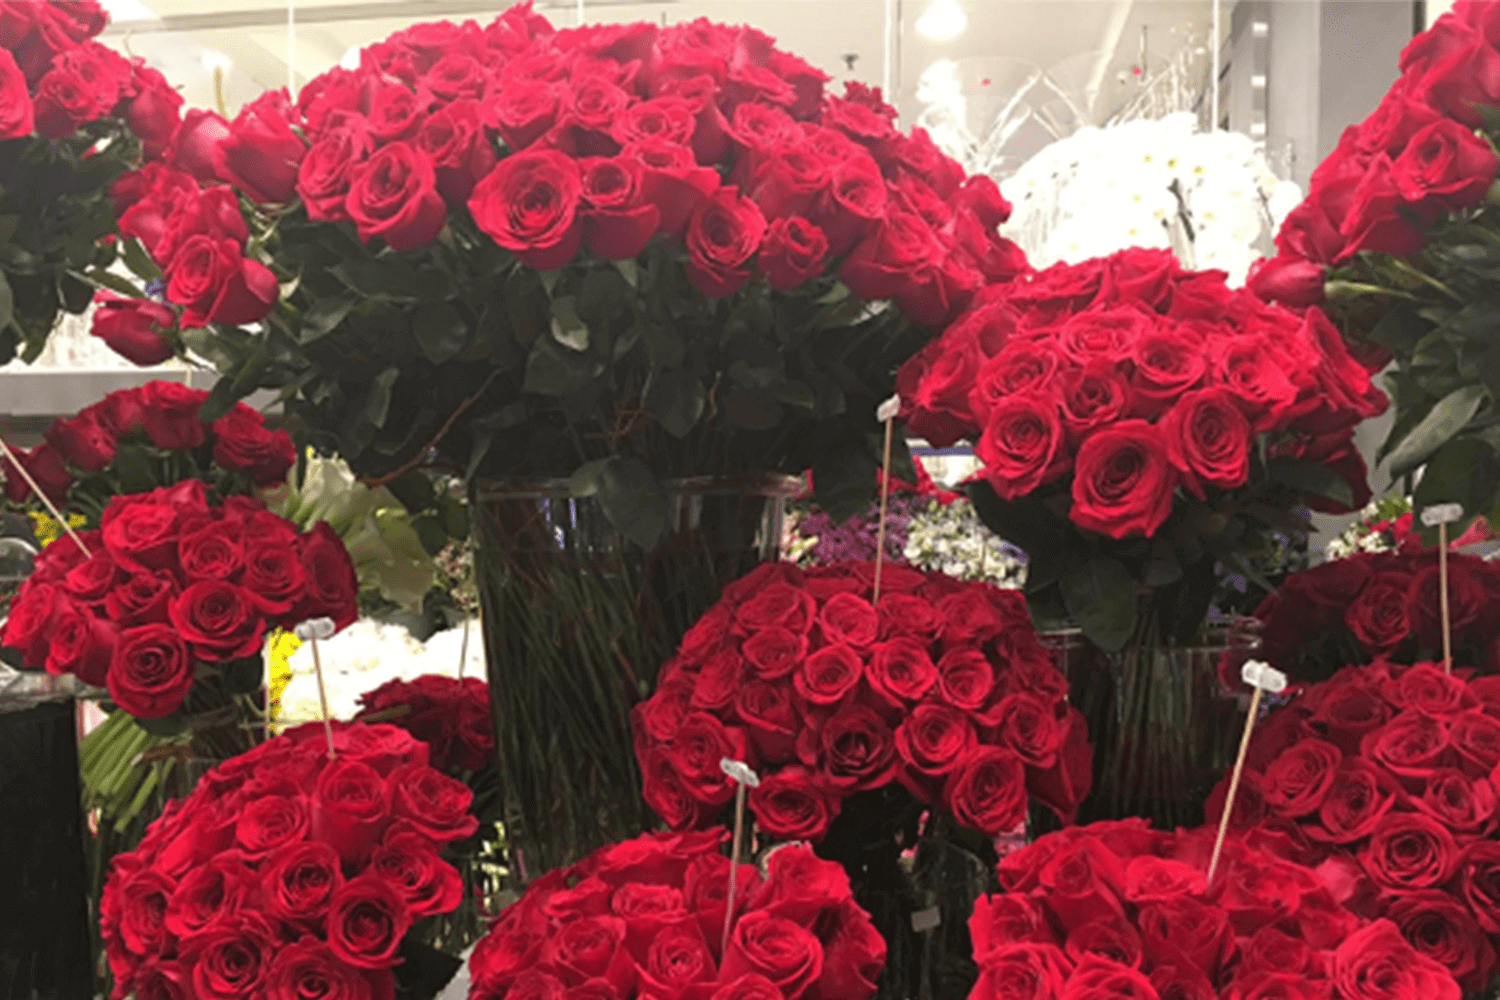 Bouquets of red roses for valentines day